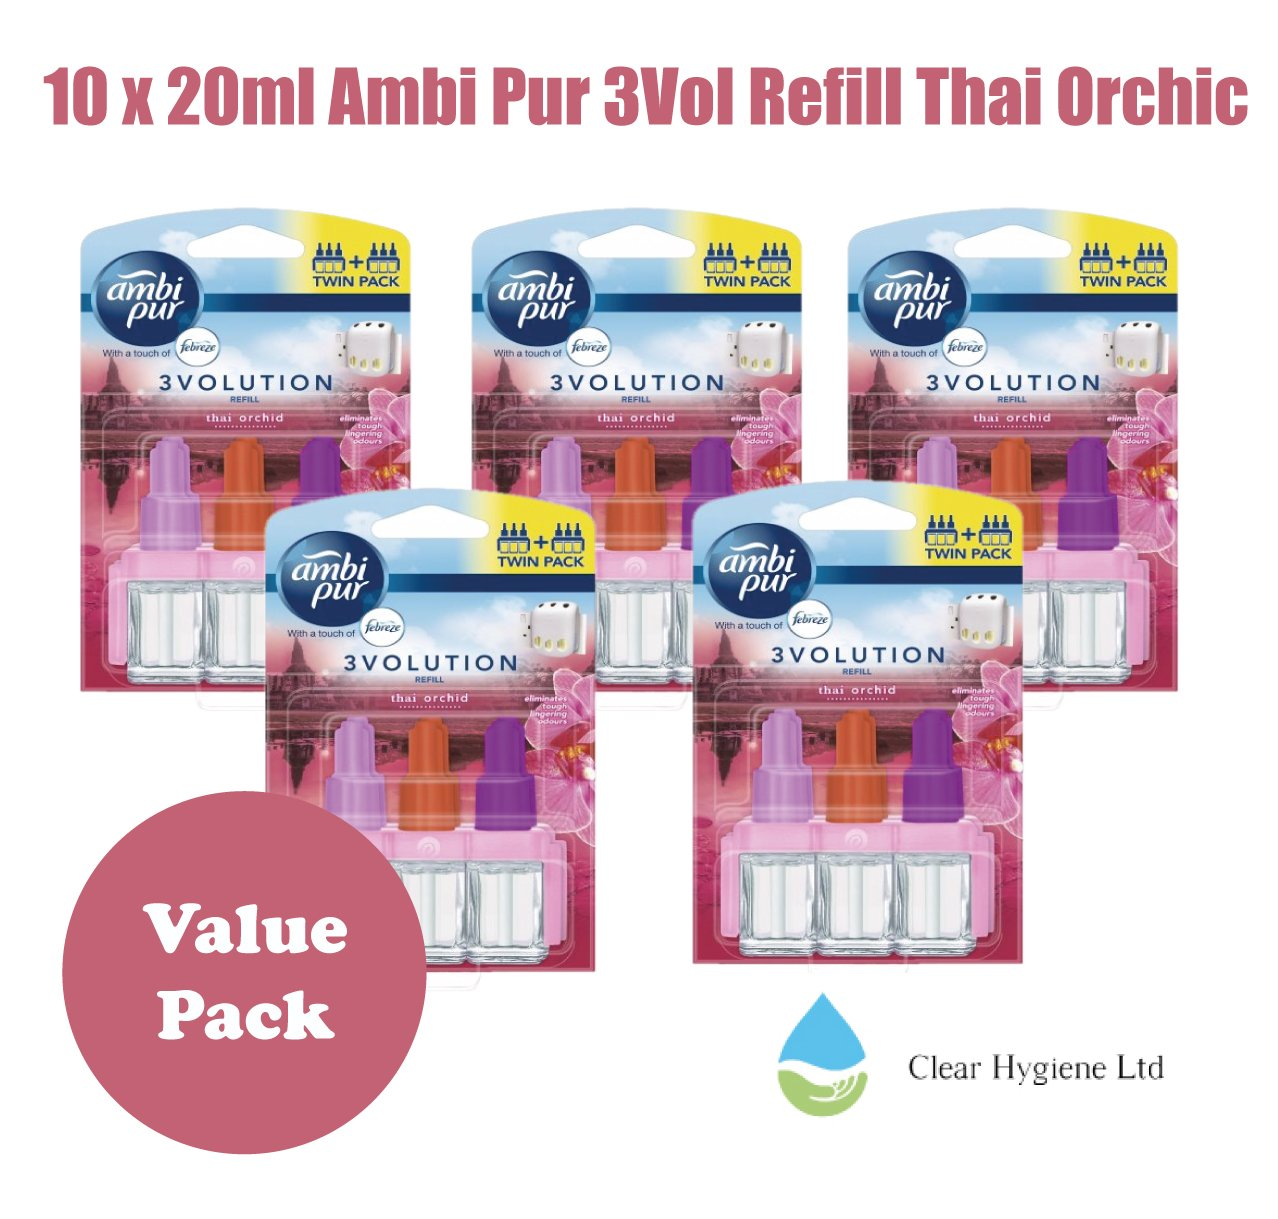 5 x 2 - 20ml Ambi Pur 3VOL Thai Orchid